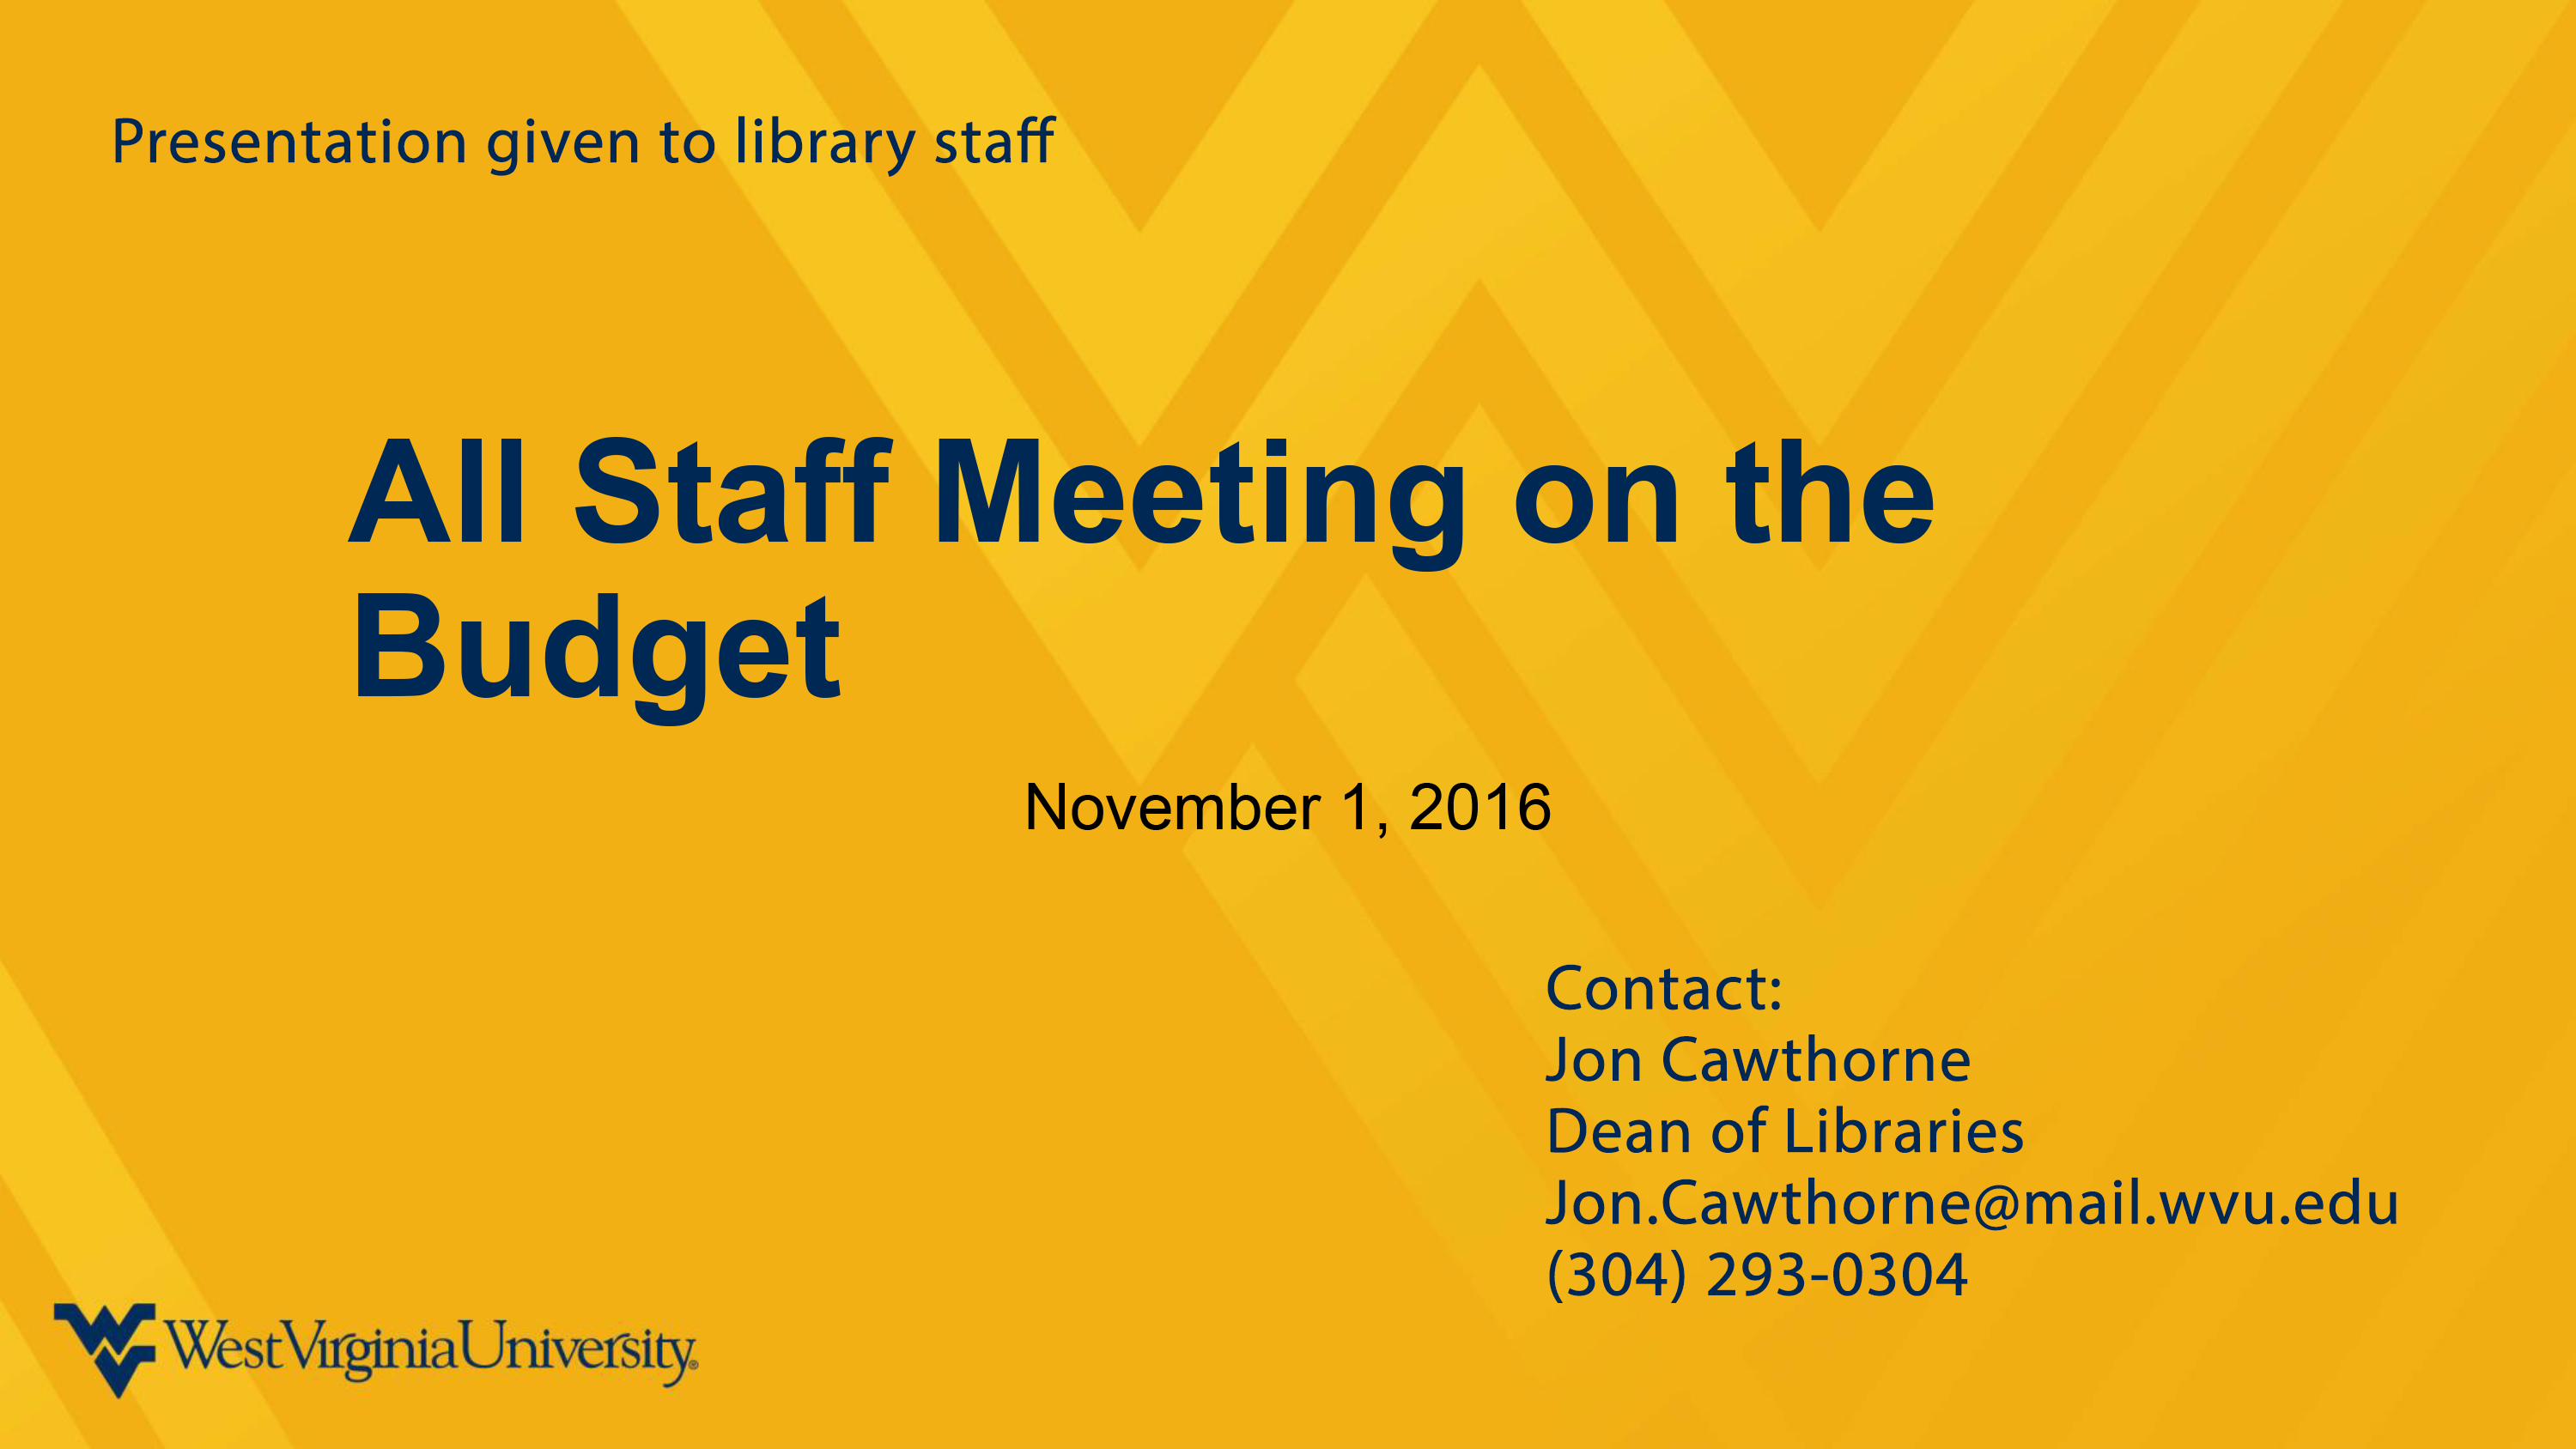 Library Staff Meeting on the Budget